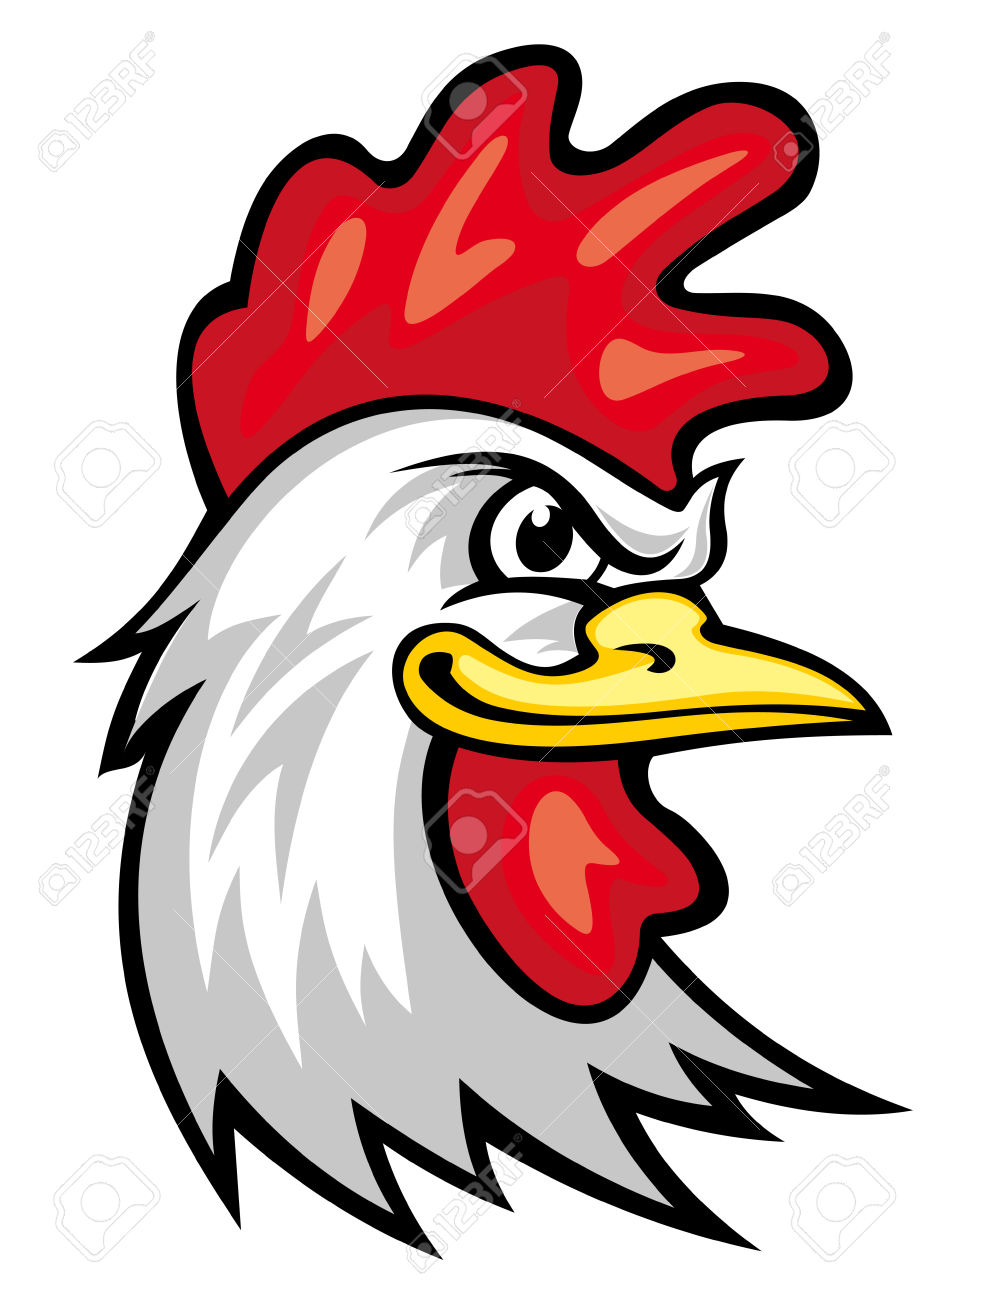 Rooster Head Stock Photos Images. Royalty Free Rooster Head Images.